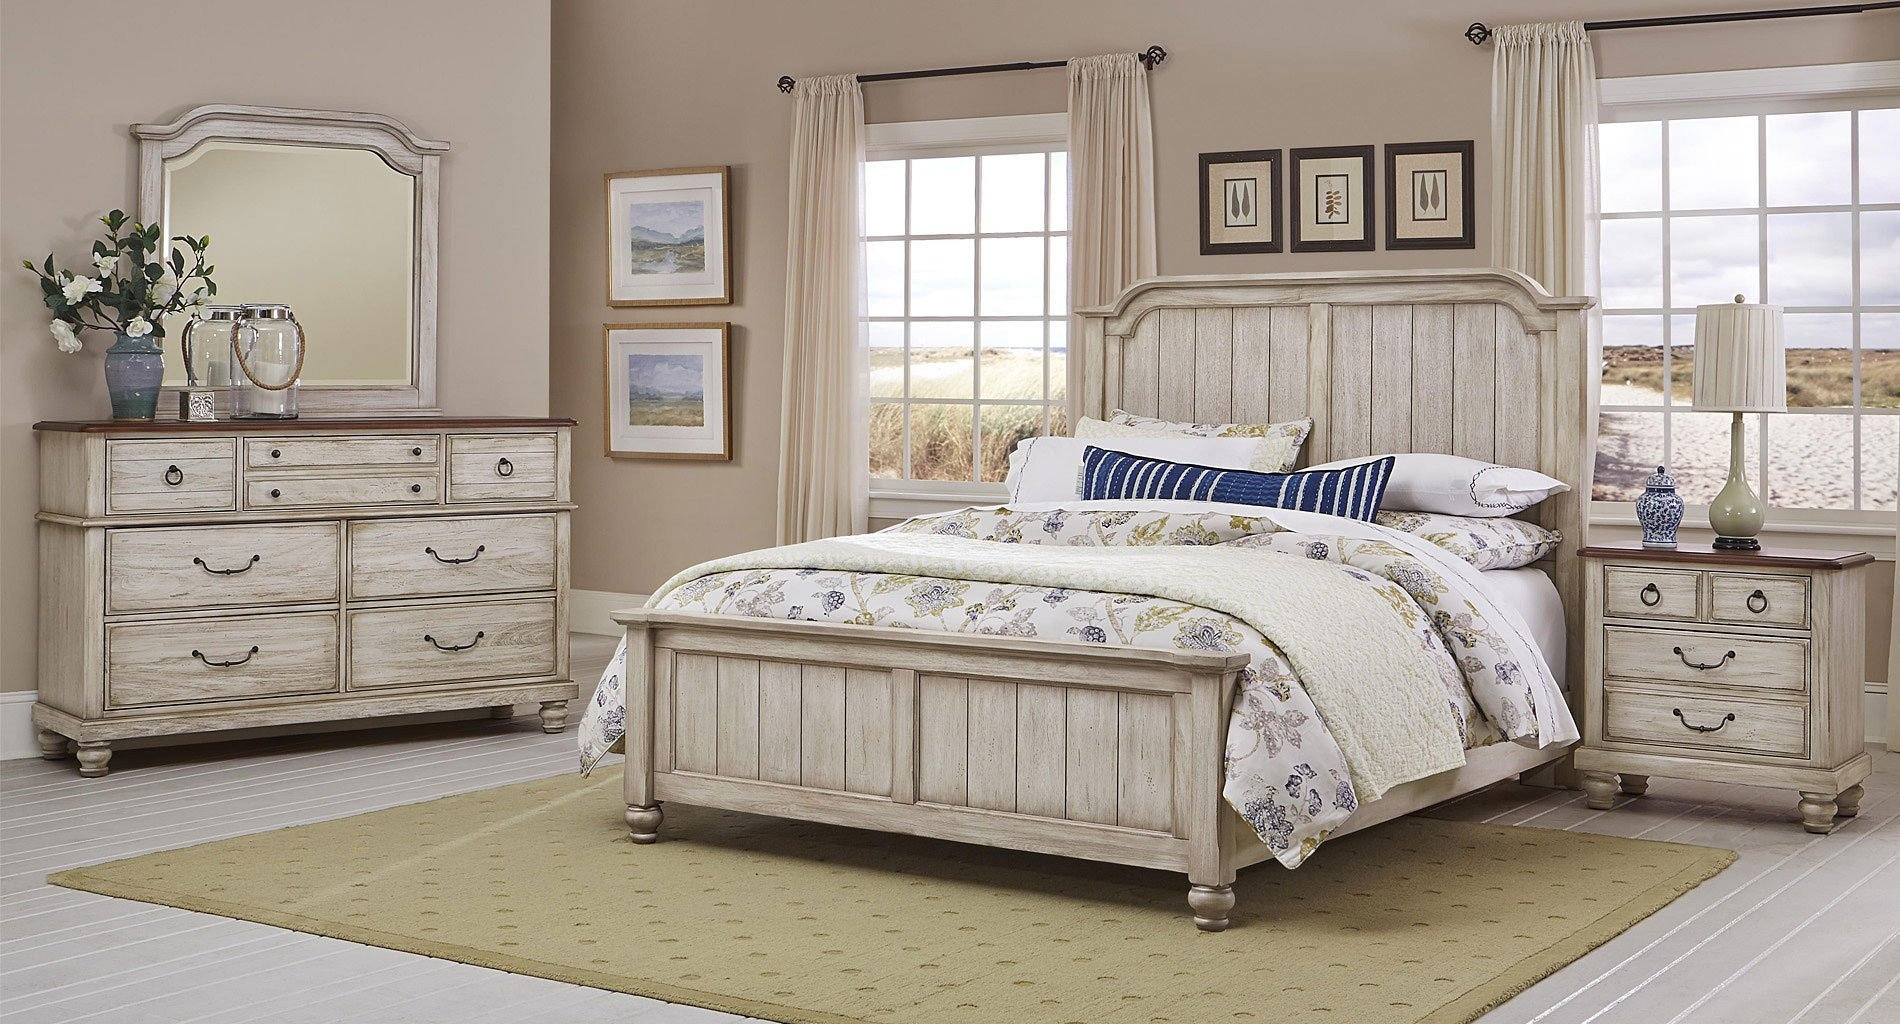 Rustic White Bedroom Set Lovely Distressed F White Bedroom Furniture